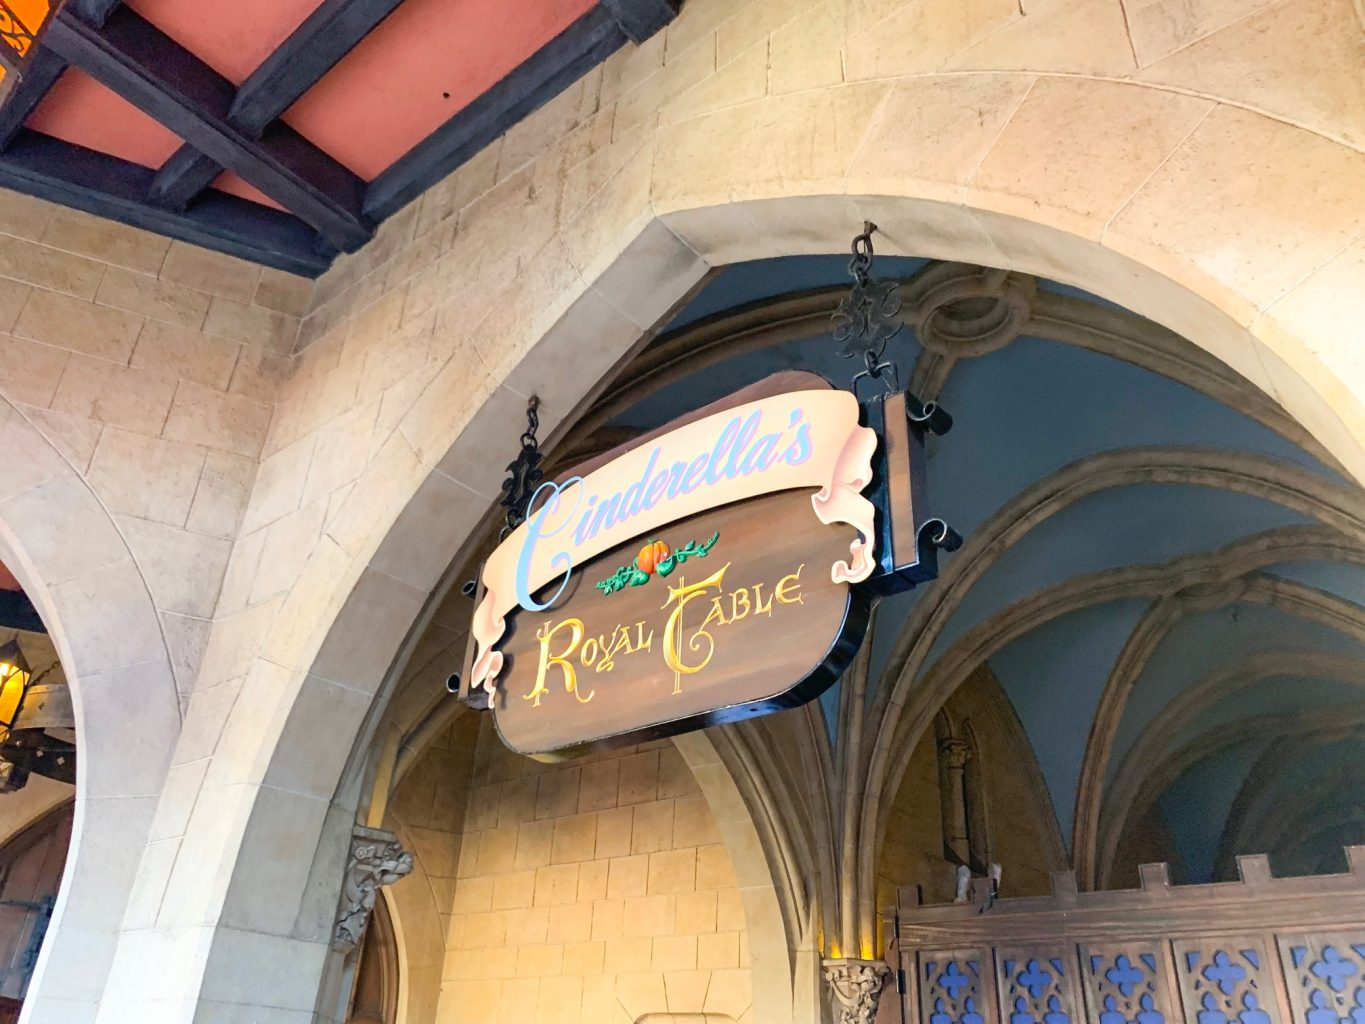 Cinderella royal table is one of the best Disney restaurants